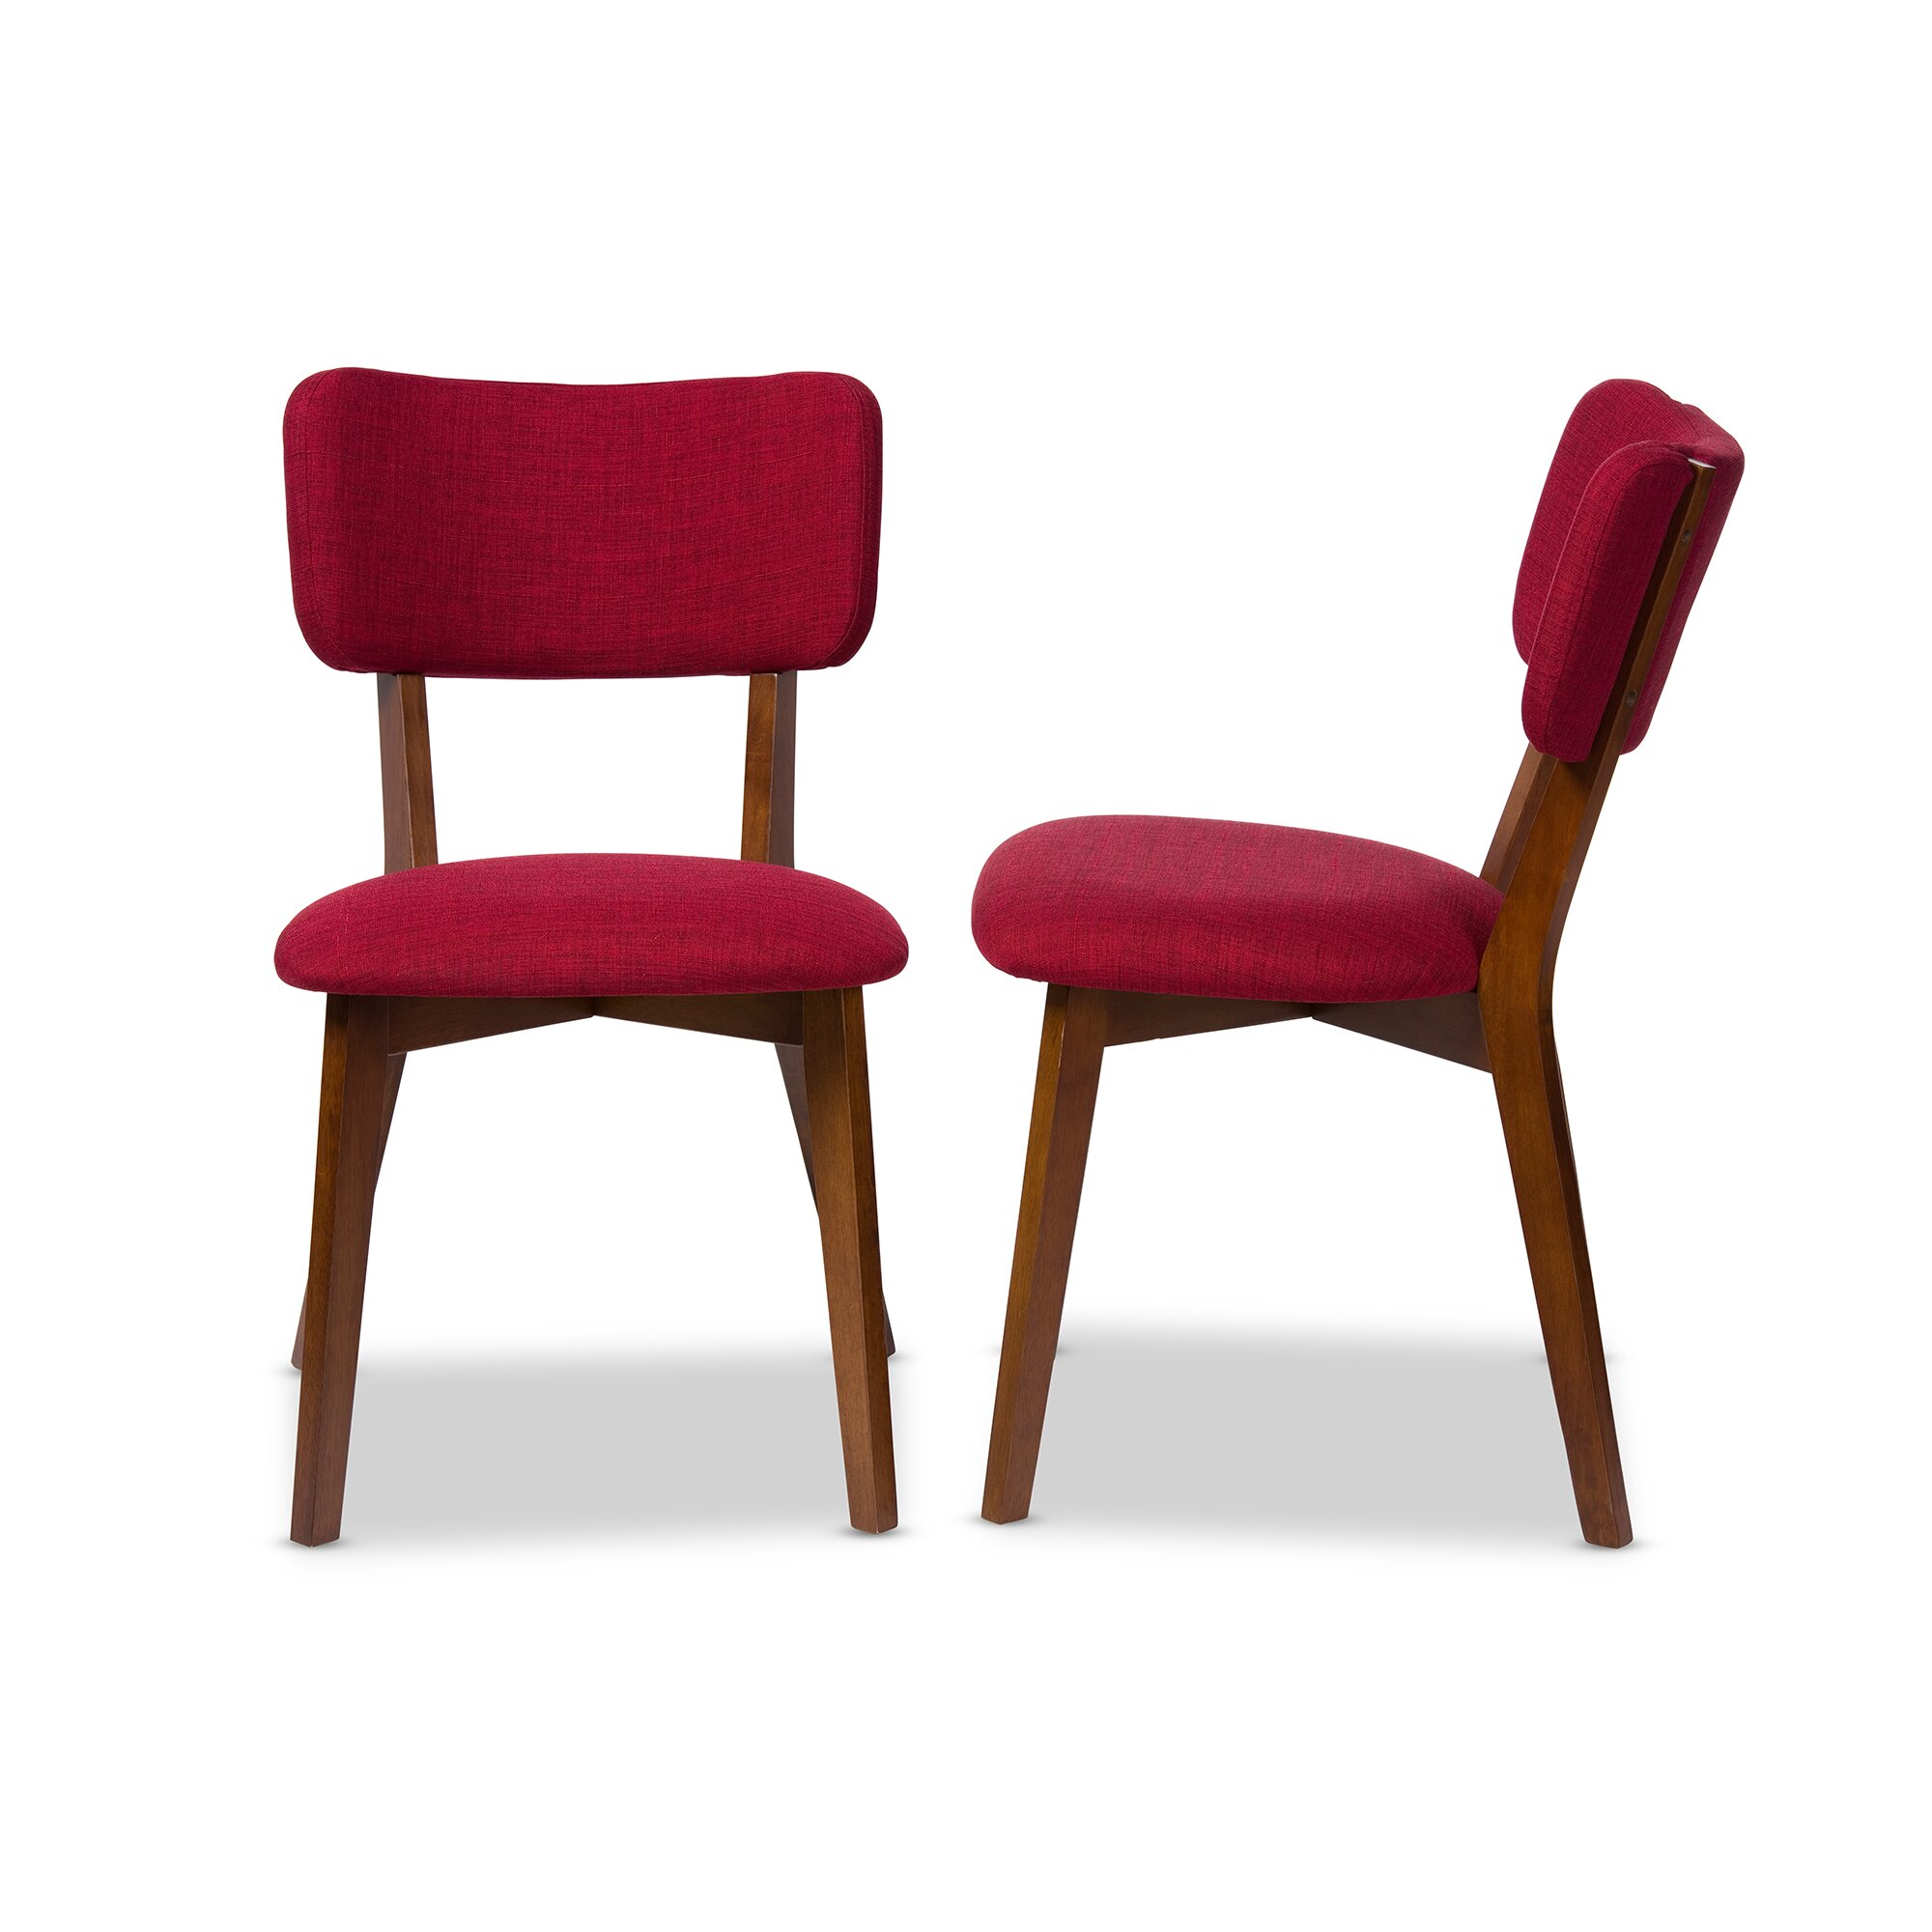 Wholesale interiors baxton studio monaco dining side chair reviews wayfair - Wholesale dining room chairs ...